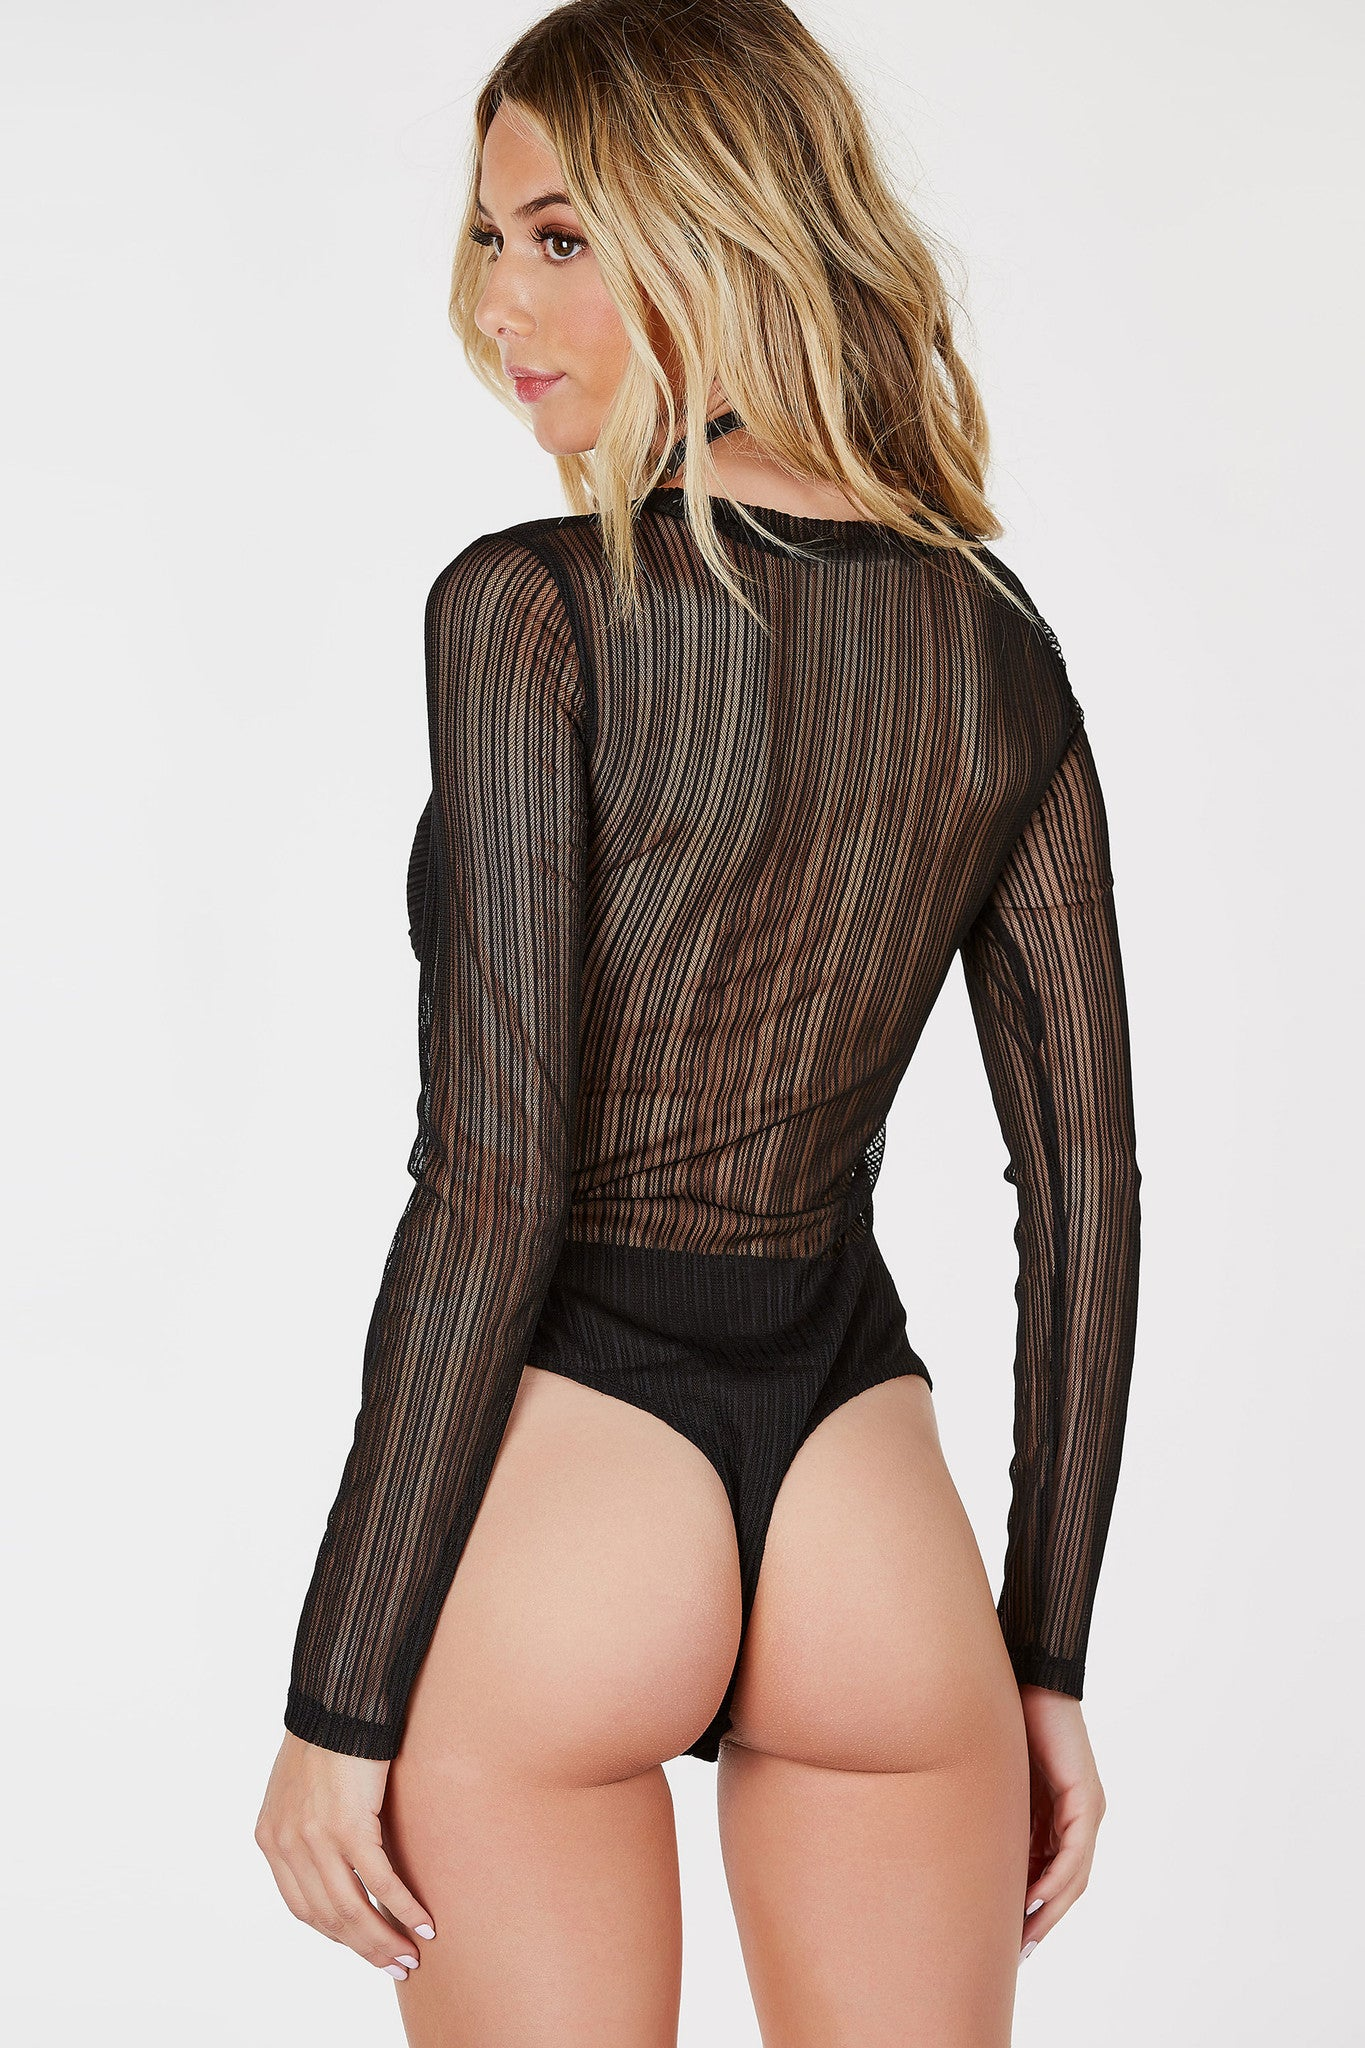 Make a sexy bold statement with this ultra chic mesh bodysuit! Contrast stripe detailing throughout with a flirty knotted layer at bust. Flattering slim fit with a cheeky cut and snap on buttons for closure.